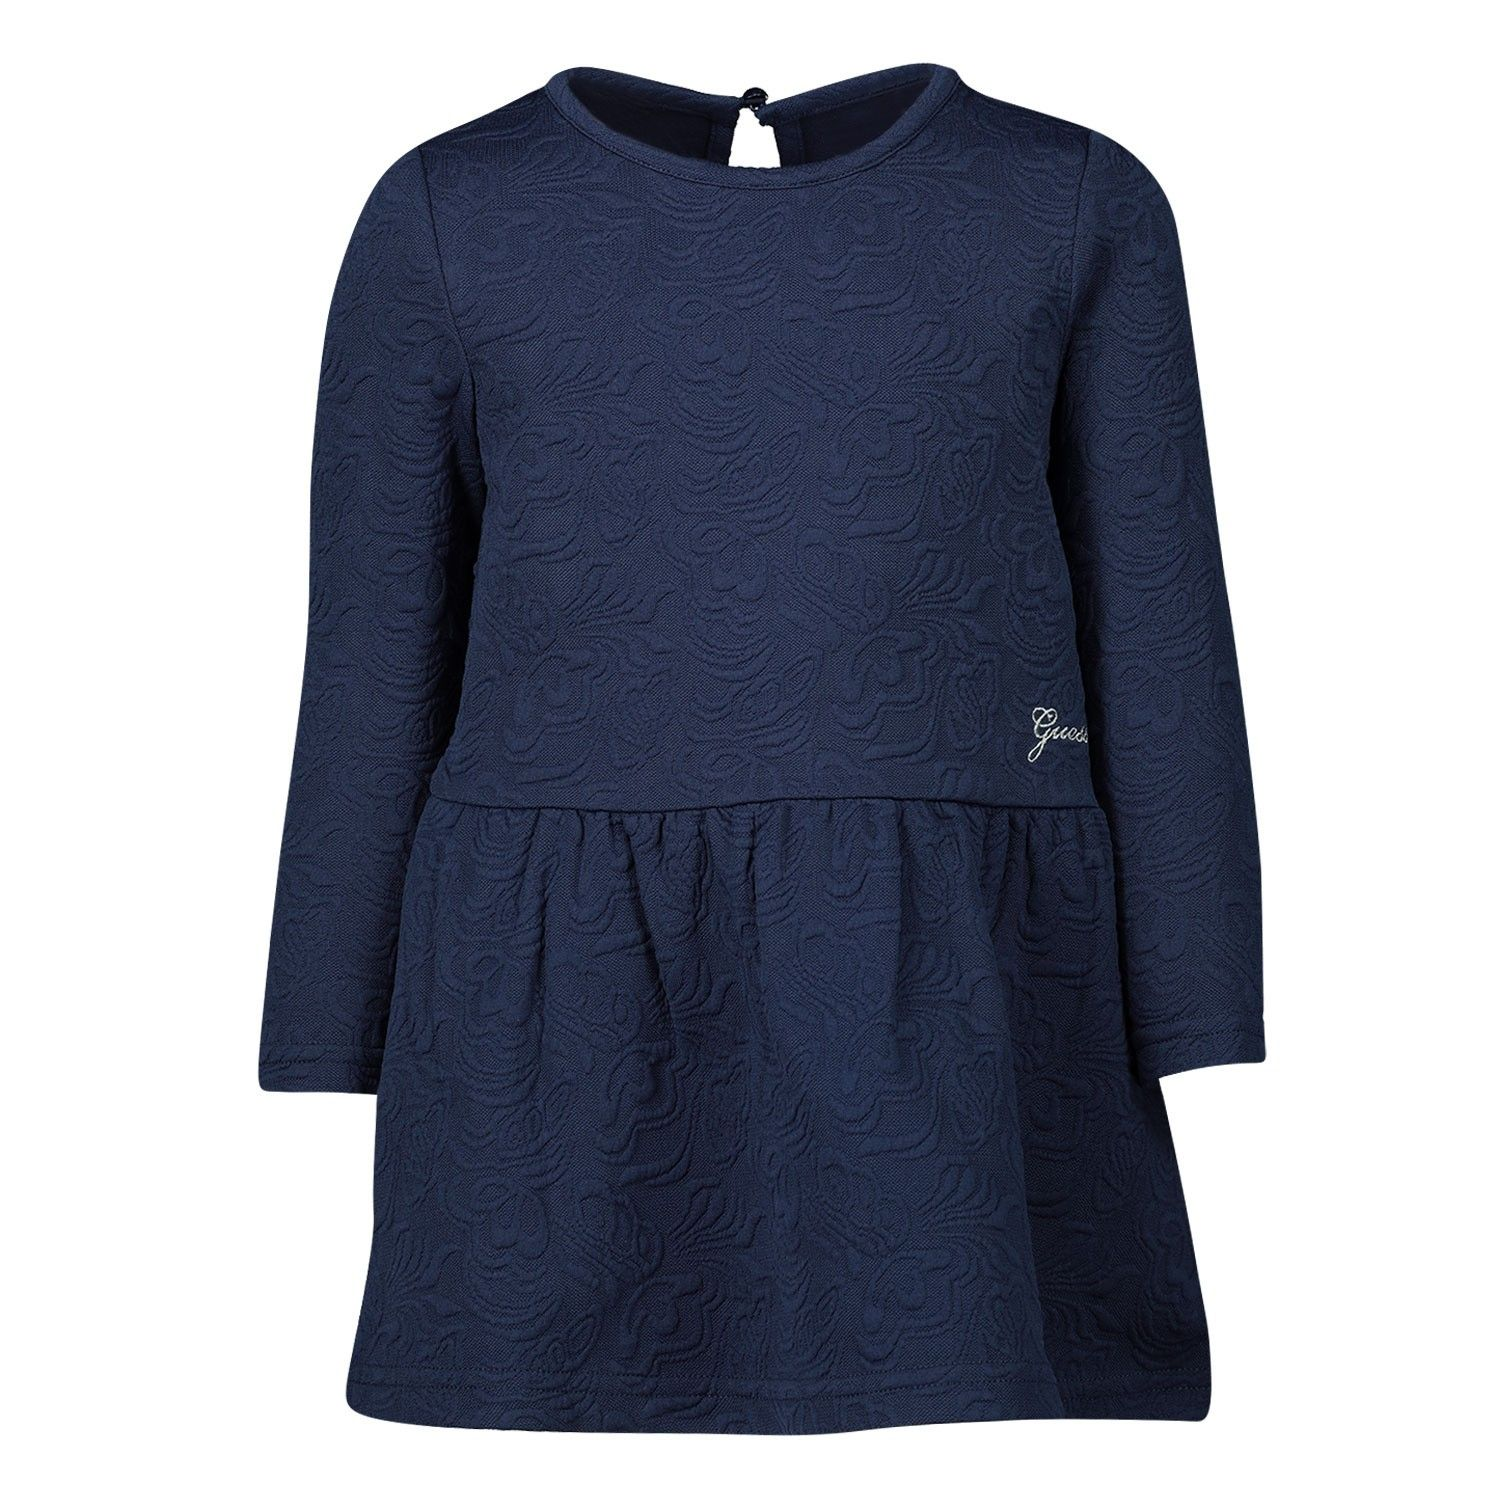 Picture of Guess A93K26 baby dress navy